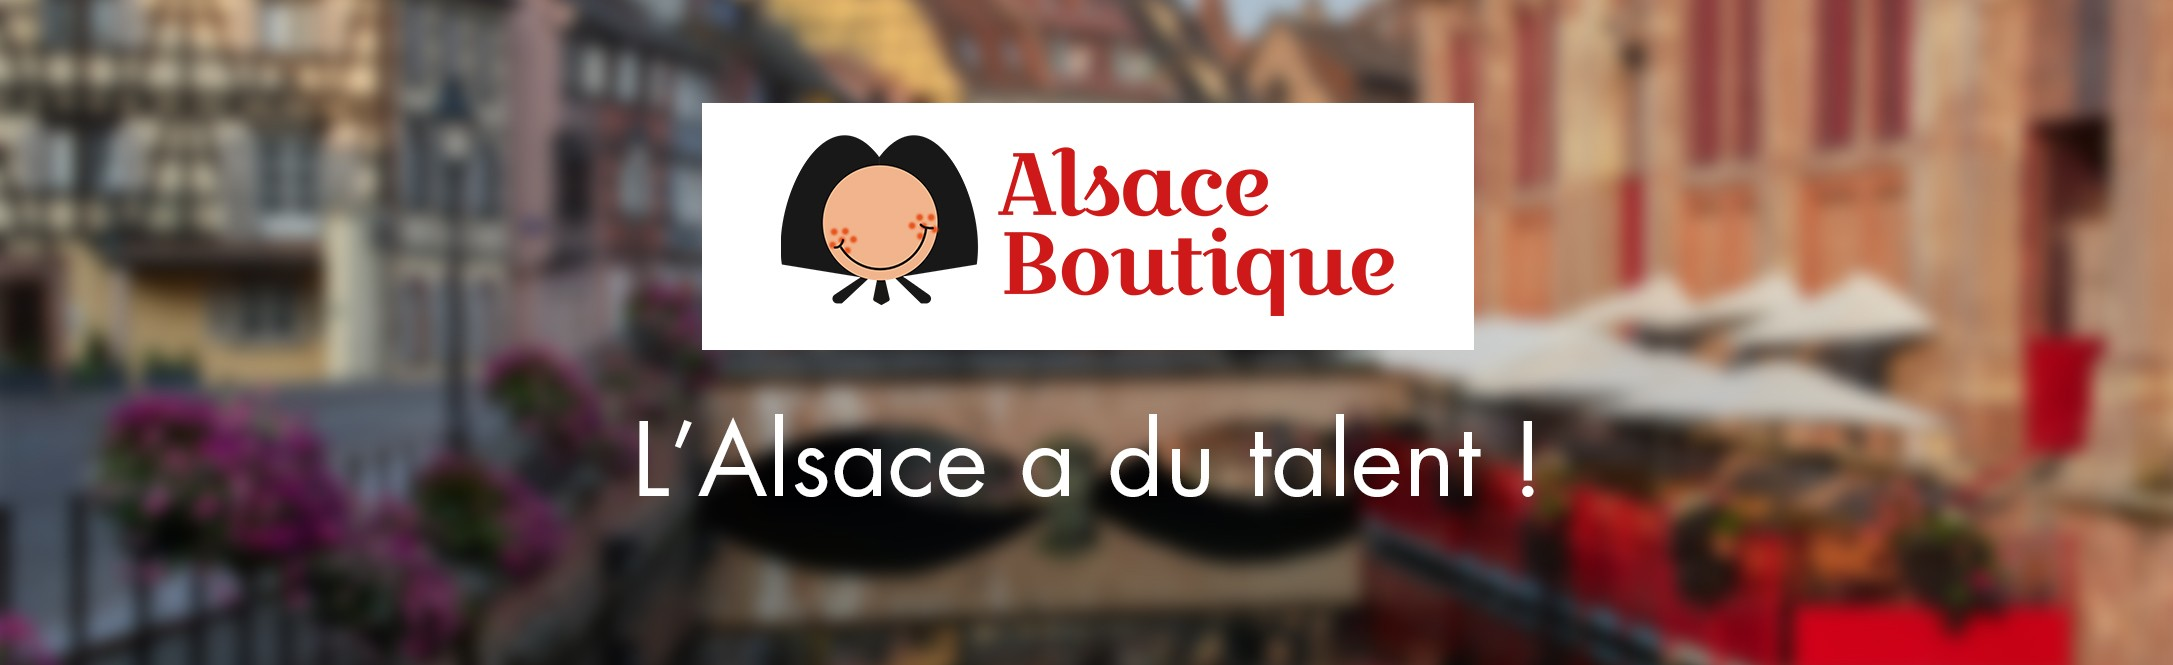 Alsace Boutique - Made in Alsace